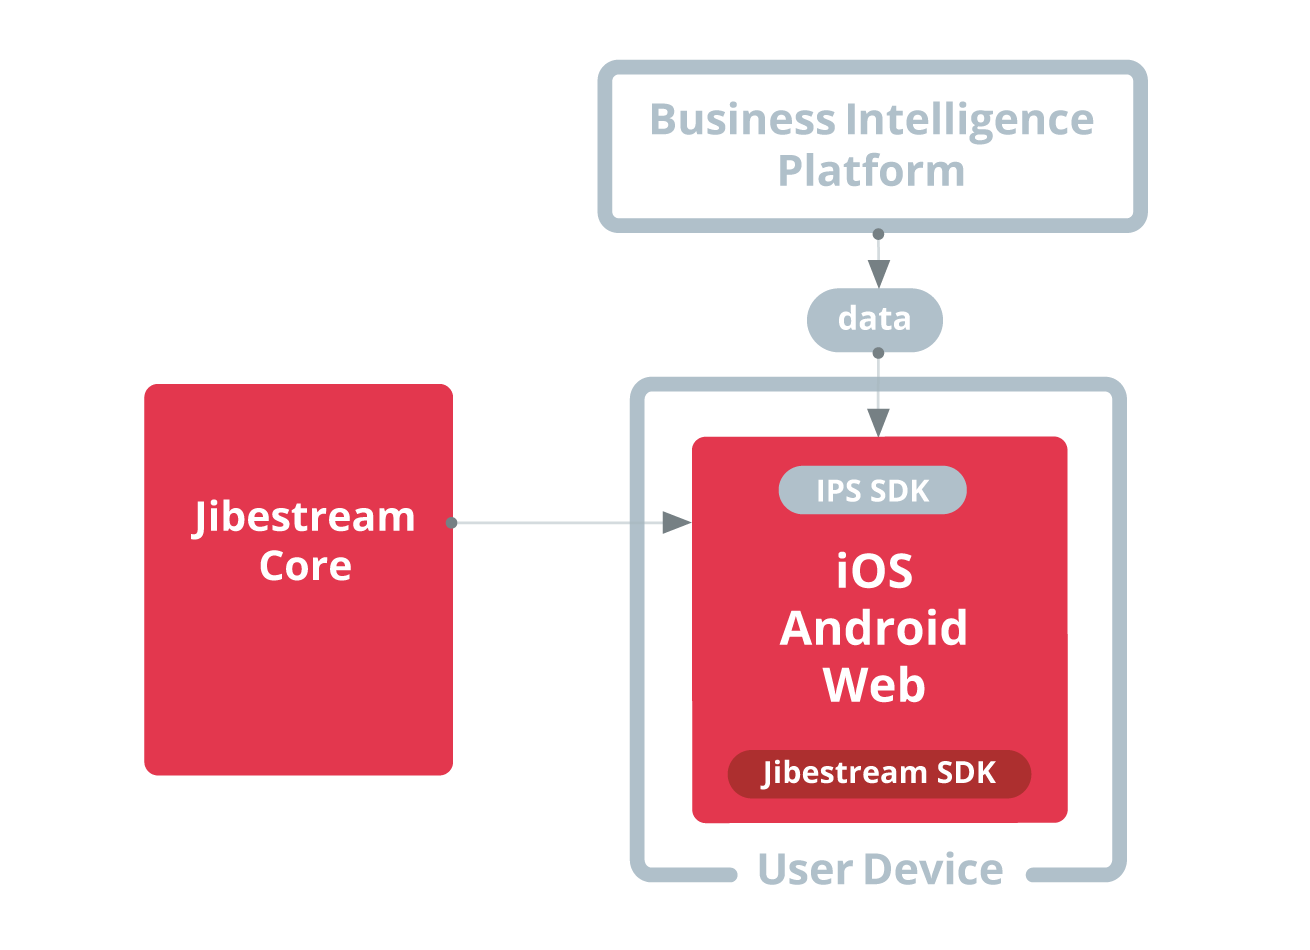 Jibestream Use Case - Spatial Business Intelligence